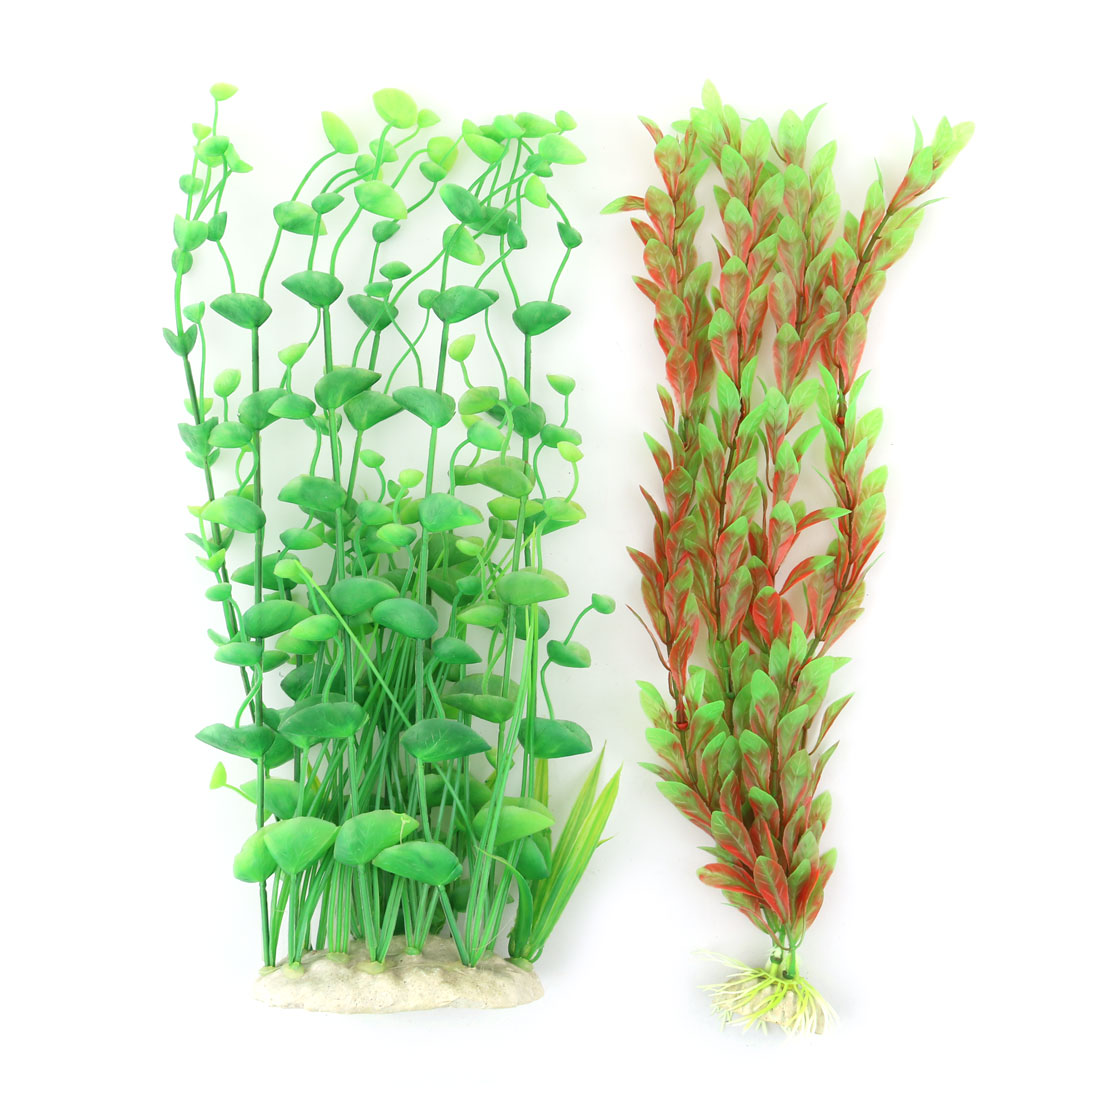 Aquarium Plastic Artificial Landscape Underwater Grass Plant Decor Green 2 in 1